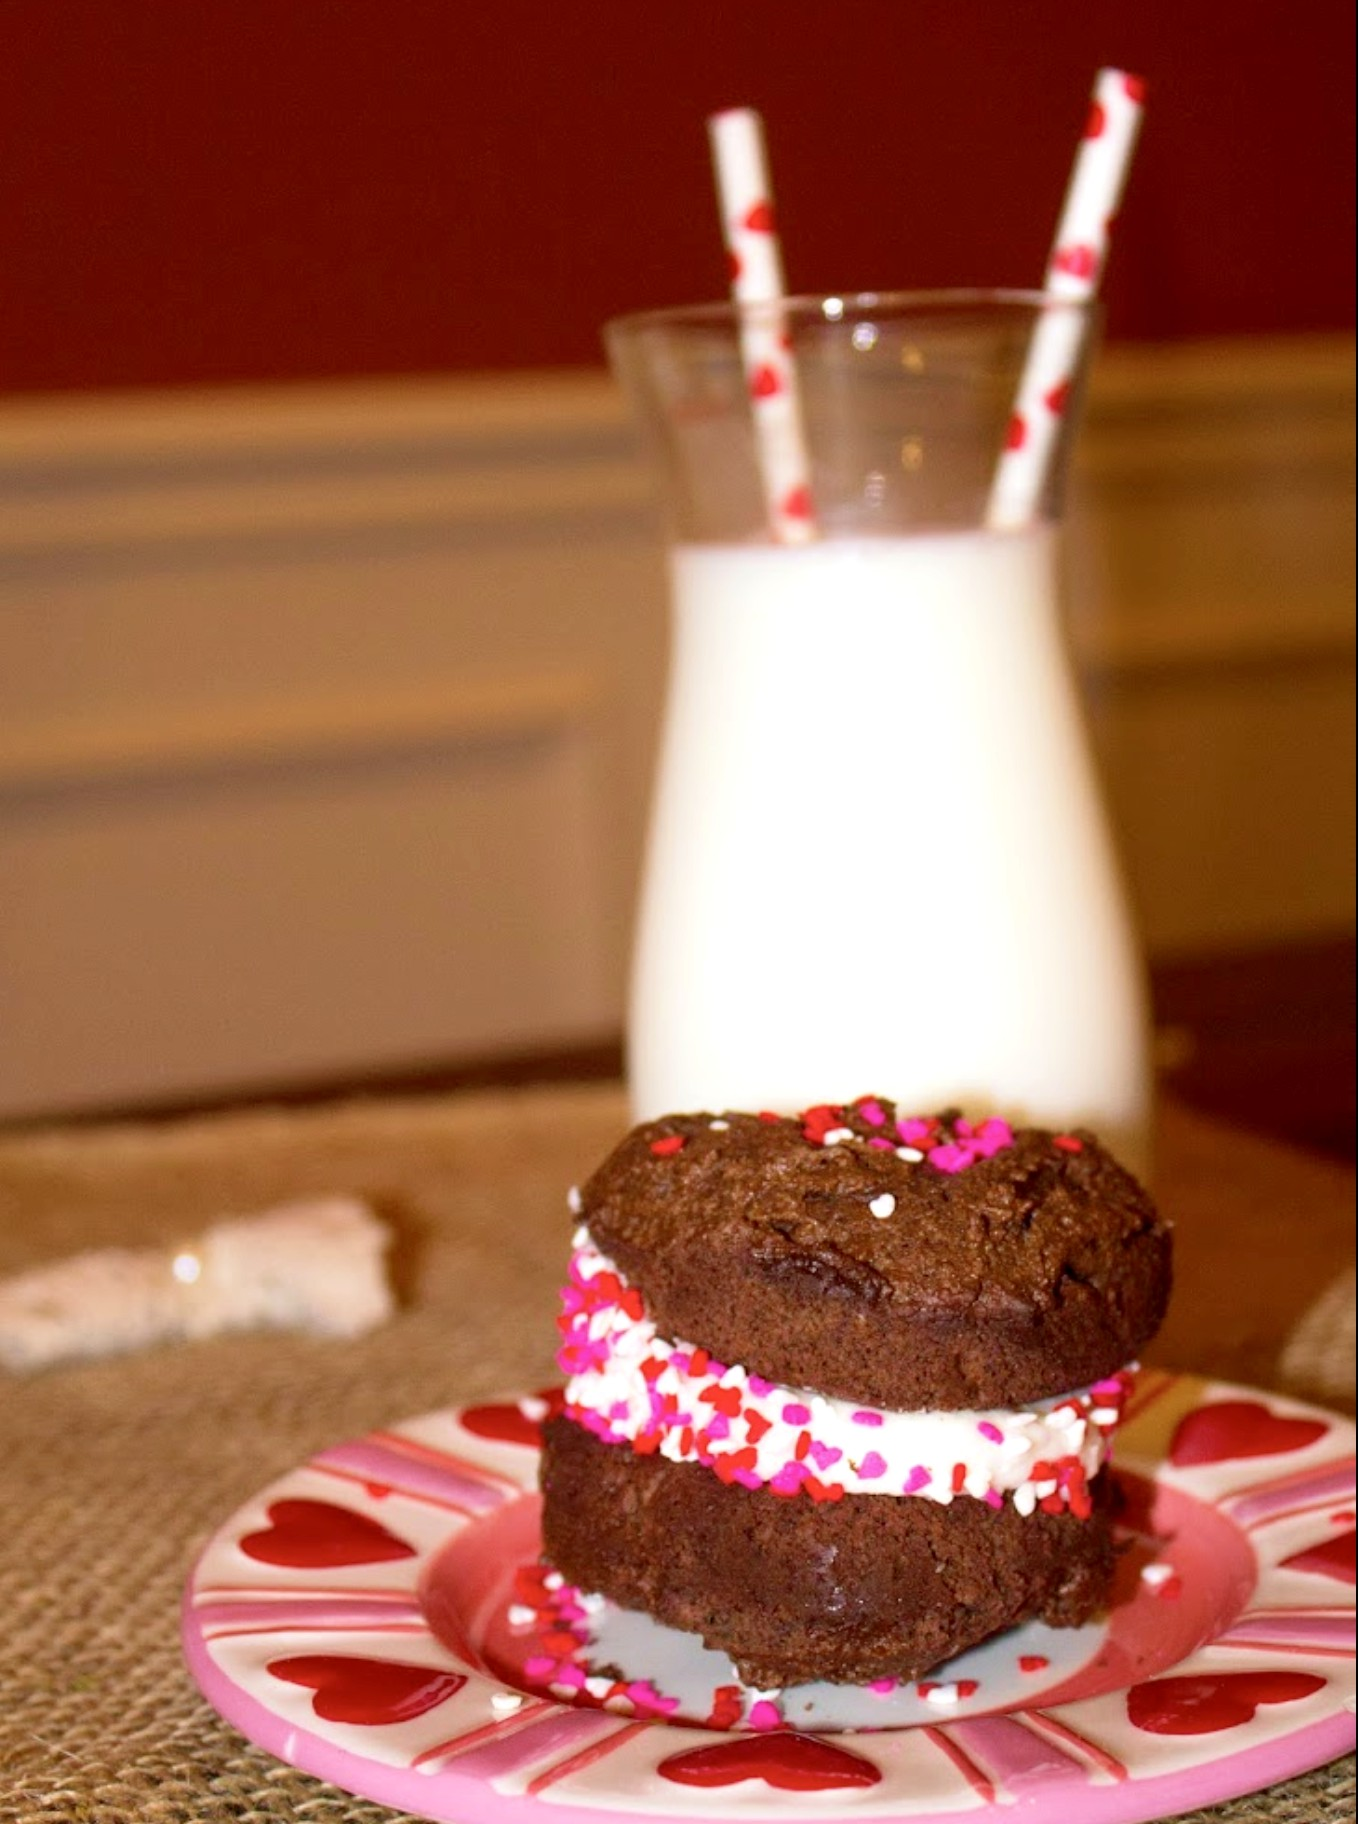 Looking for something sweet to make this Valentine's Day? Try these delicious Chocolate Valentine Whoopie Pies!